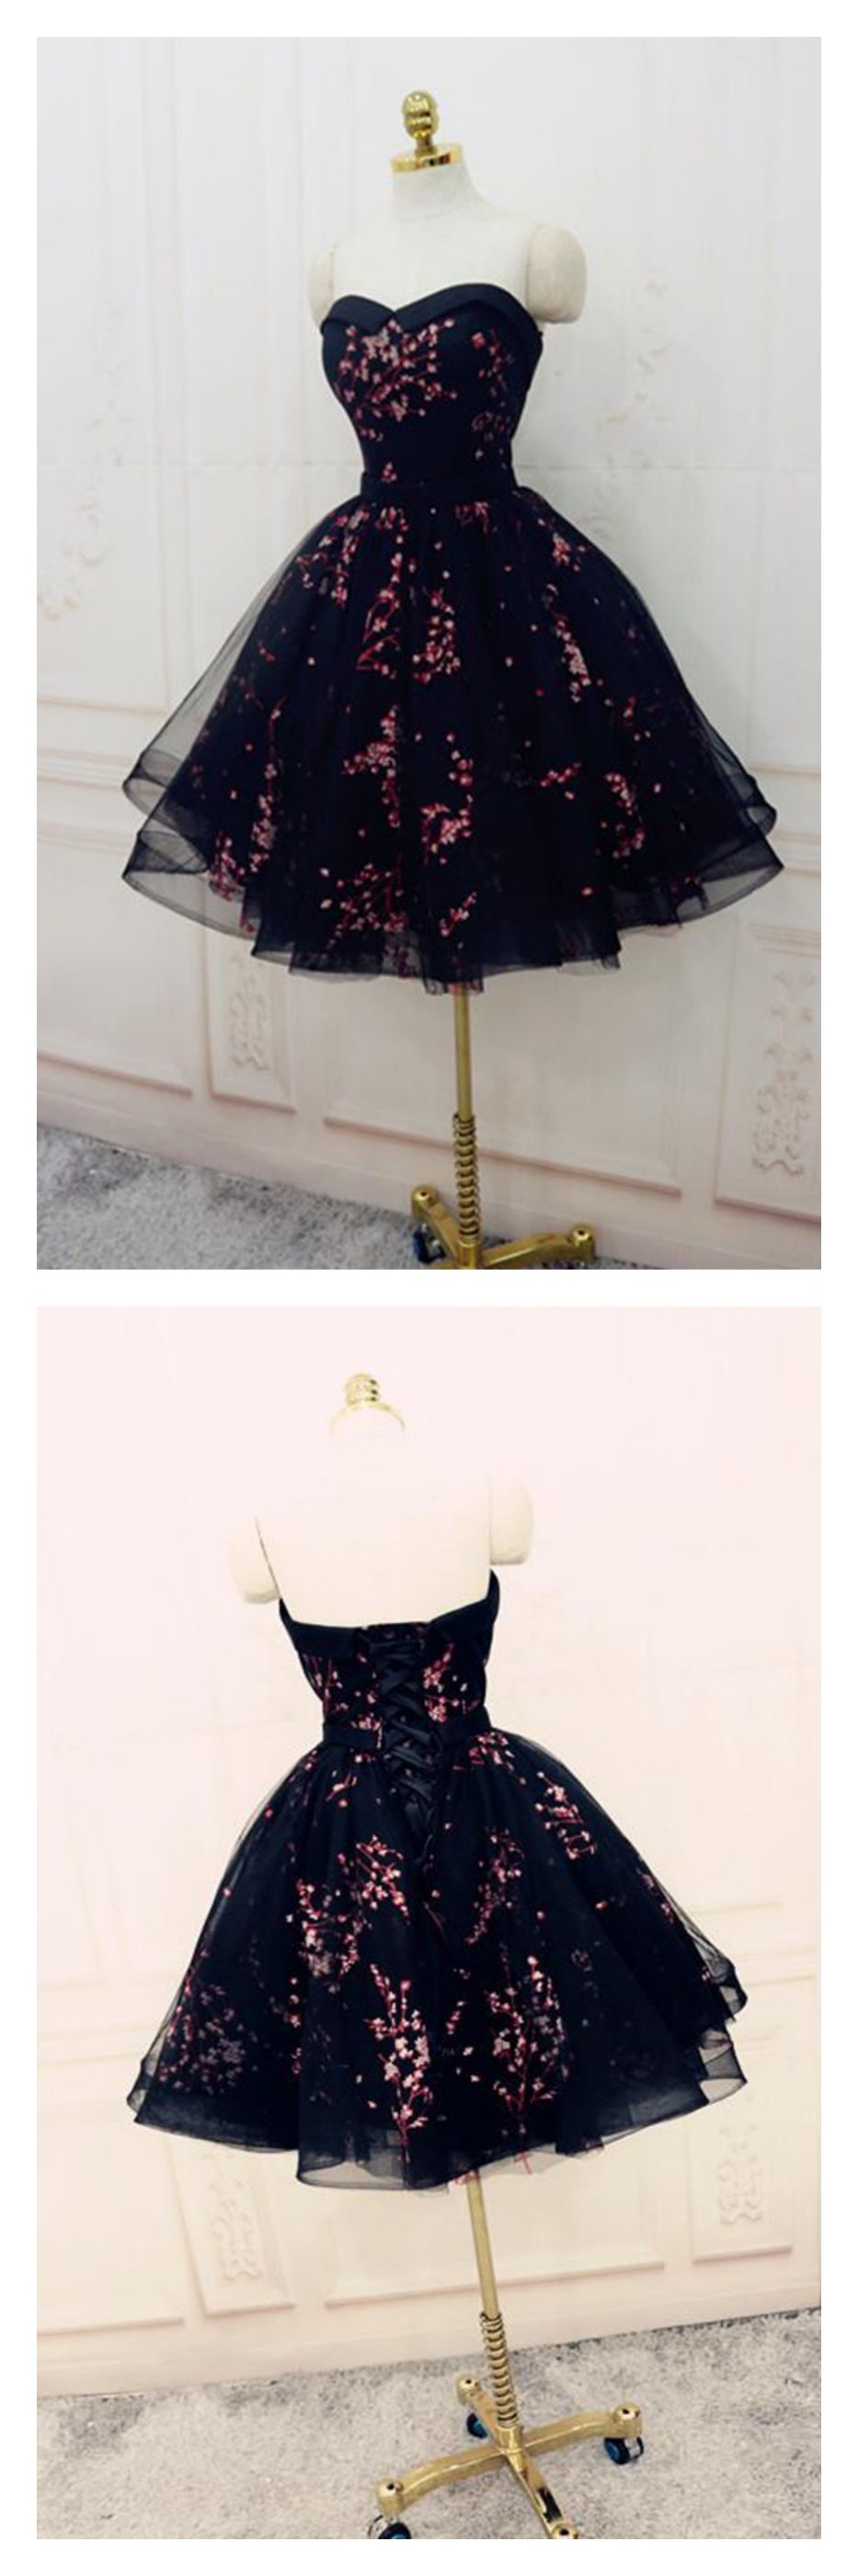 Black sweetheart knee length party dresseshs from simi bridal